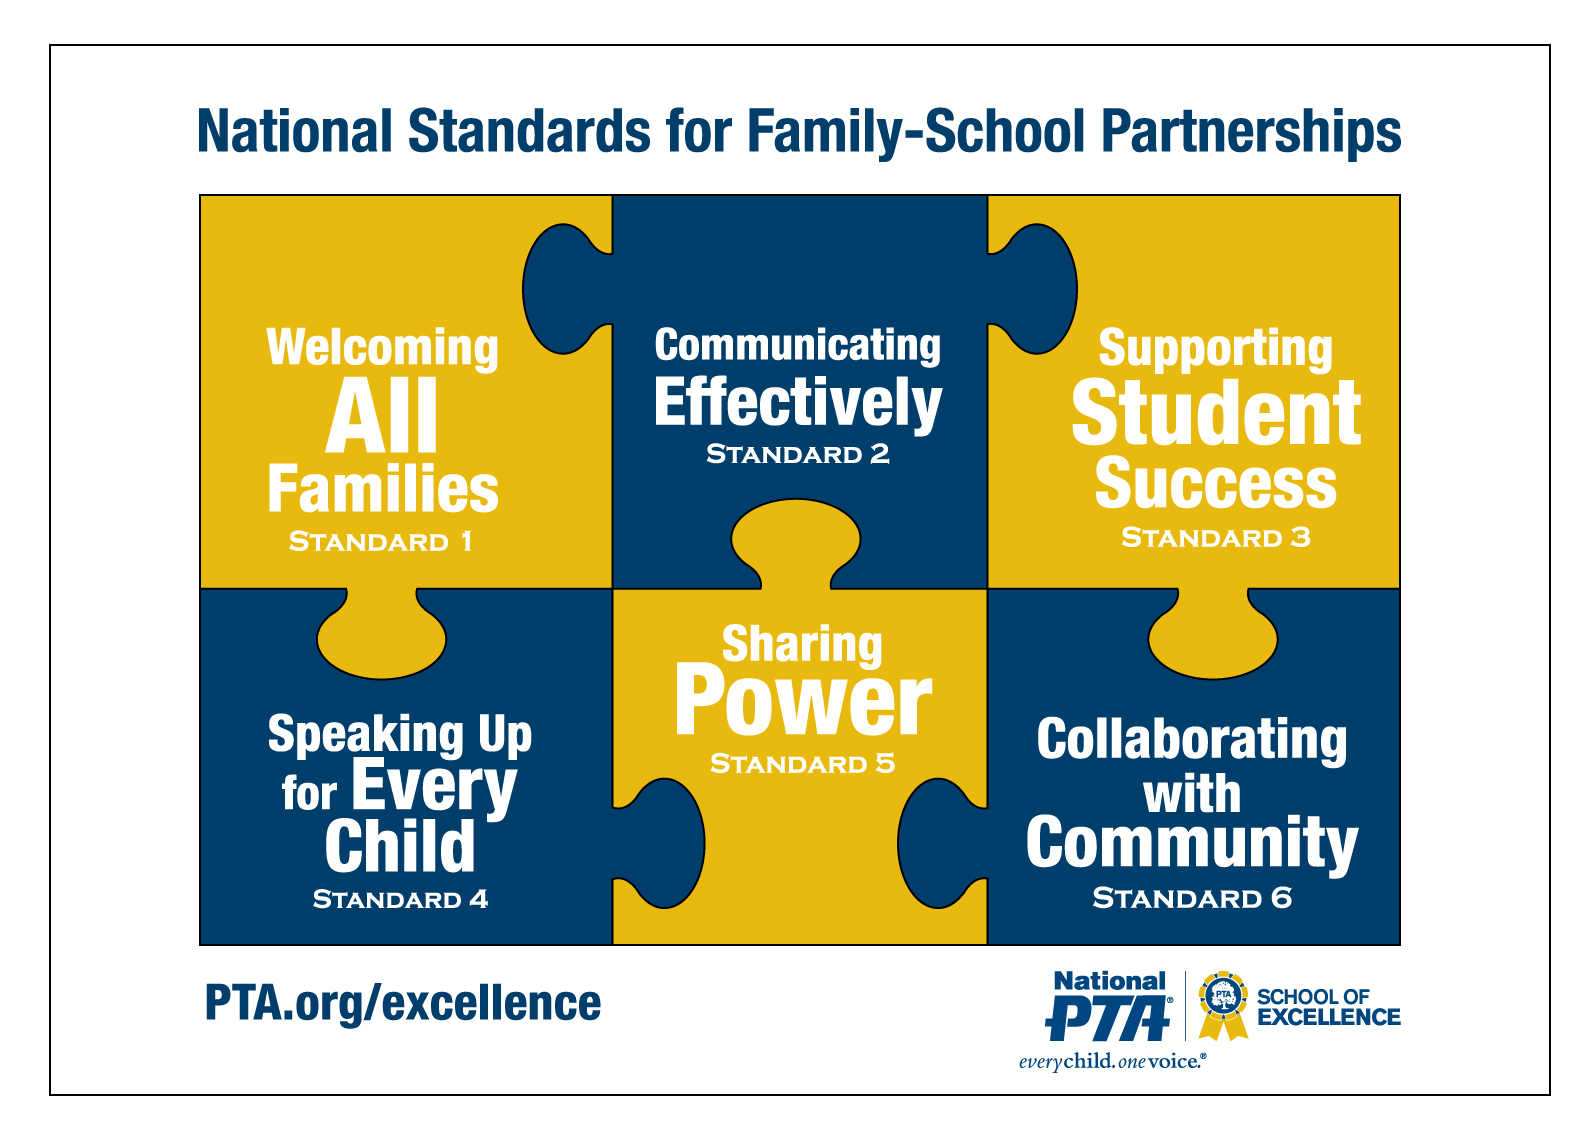 state pta school of excellence library programs national pta